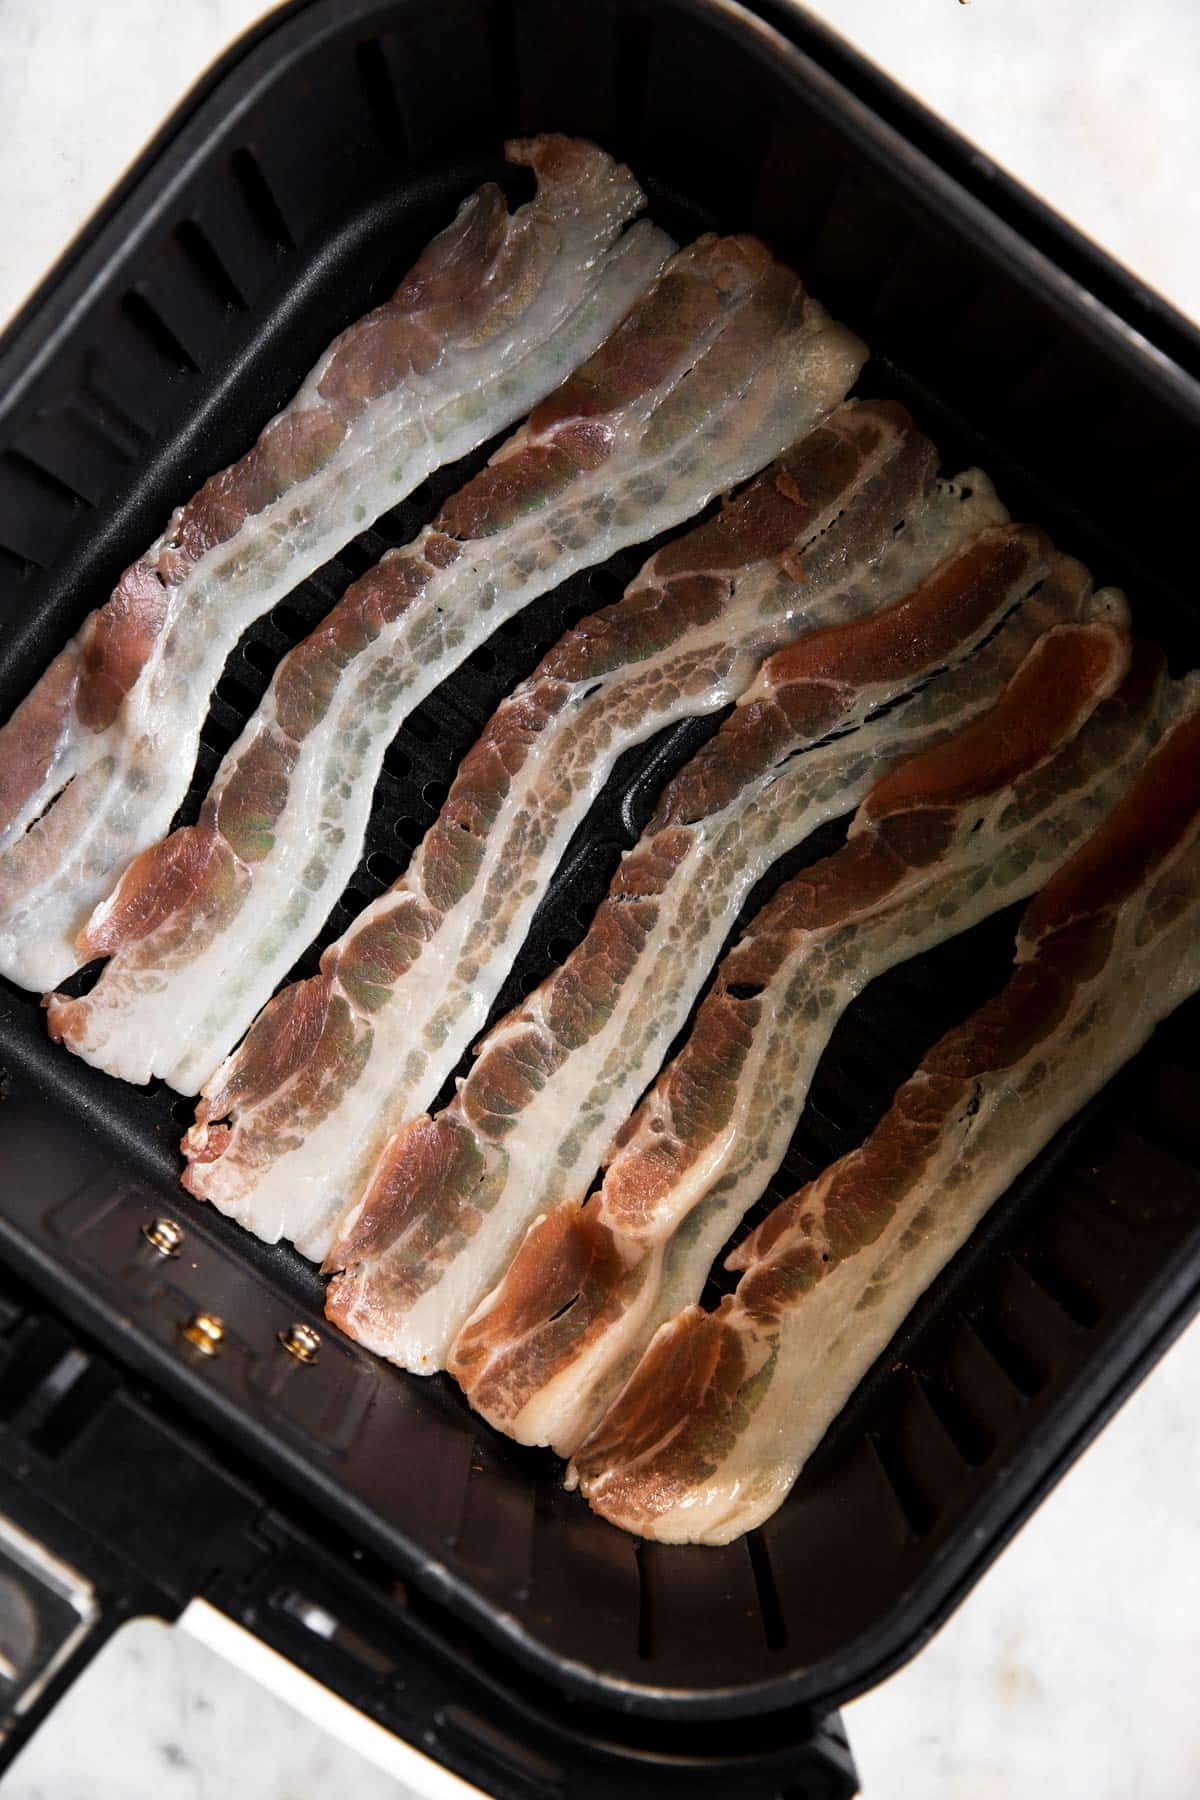 uncooked bacon in air fryer basket